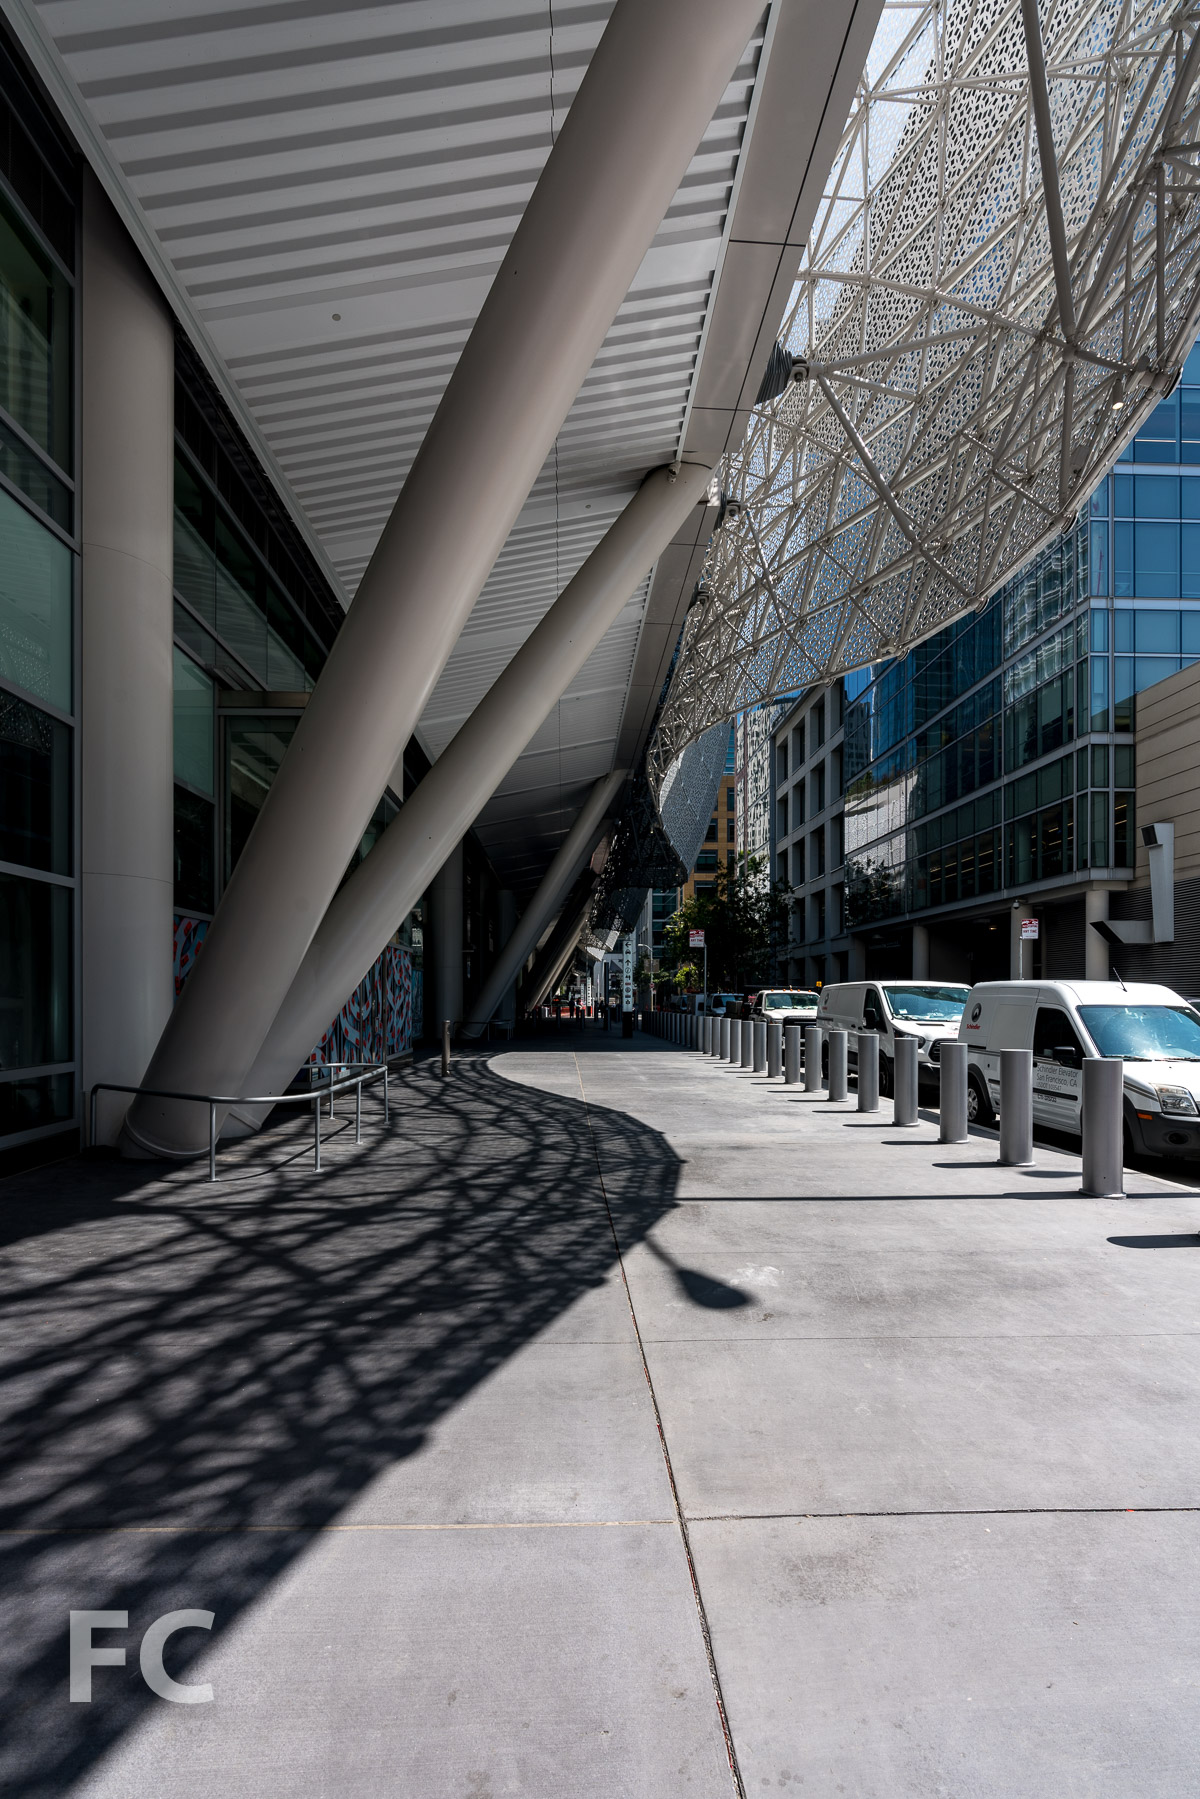 2018_08_16-Transbay Transit Center-DSC01271.jpg